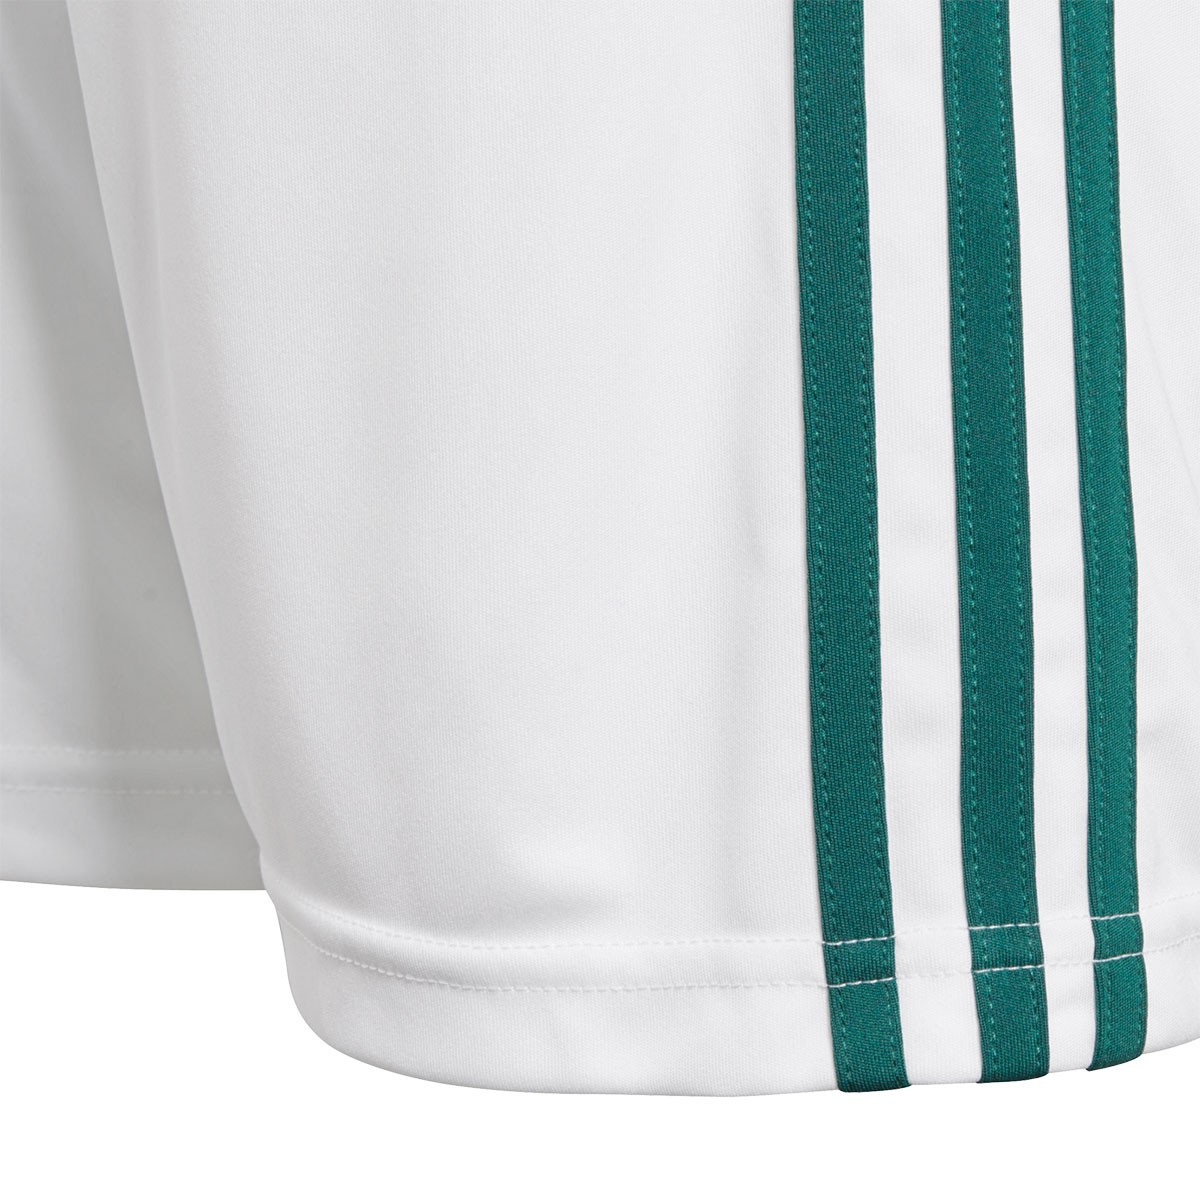 7033e2ae3 Shorts adidas Kids Mexico 2017-2018 Home White-Collegiate green - Tienda de  fútbol Fútbol Emotion